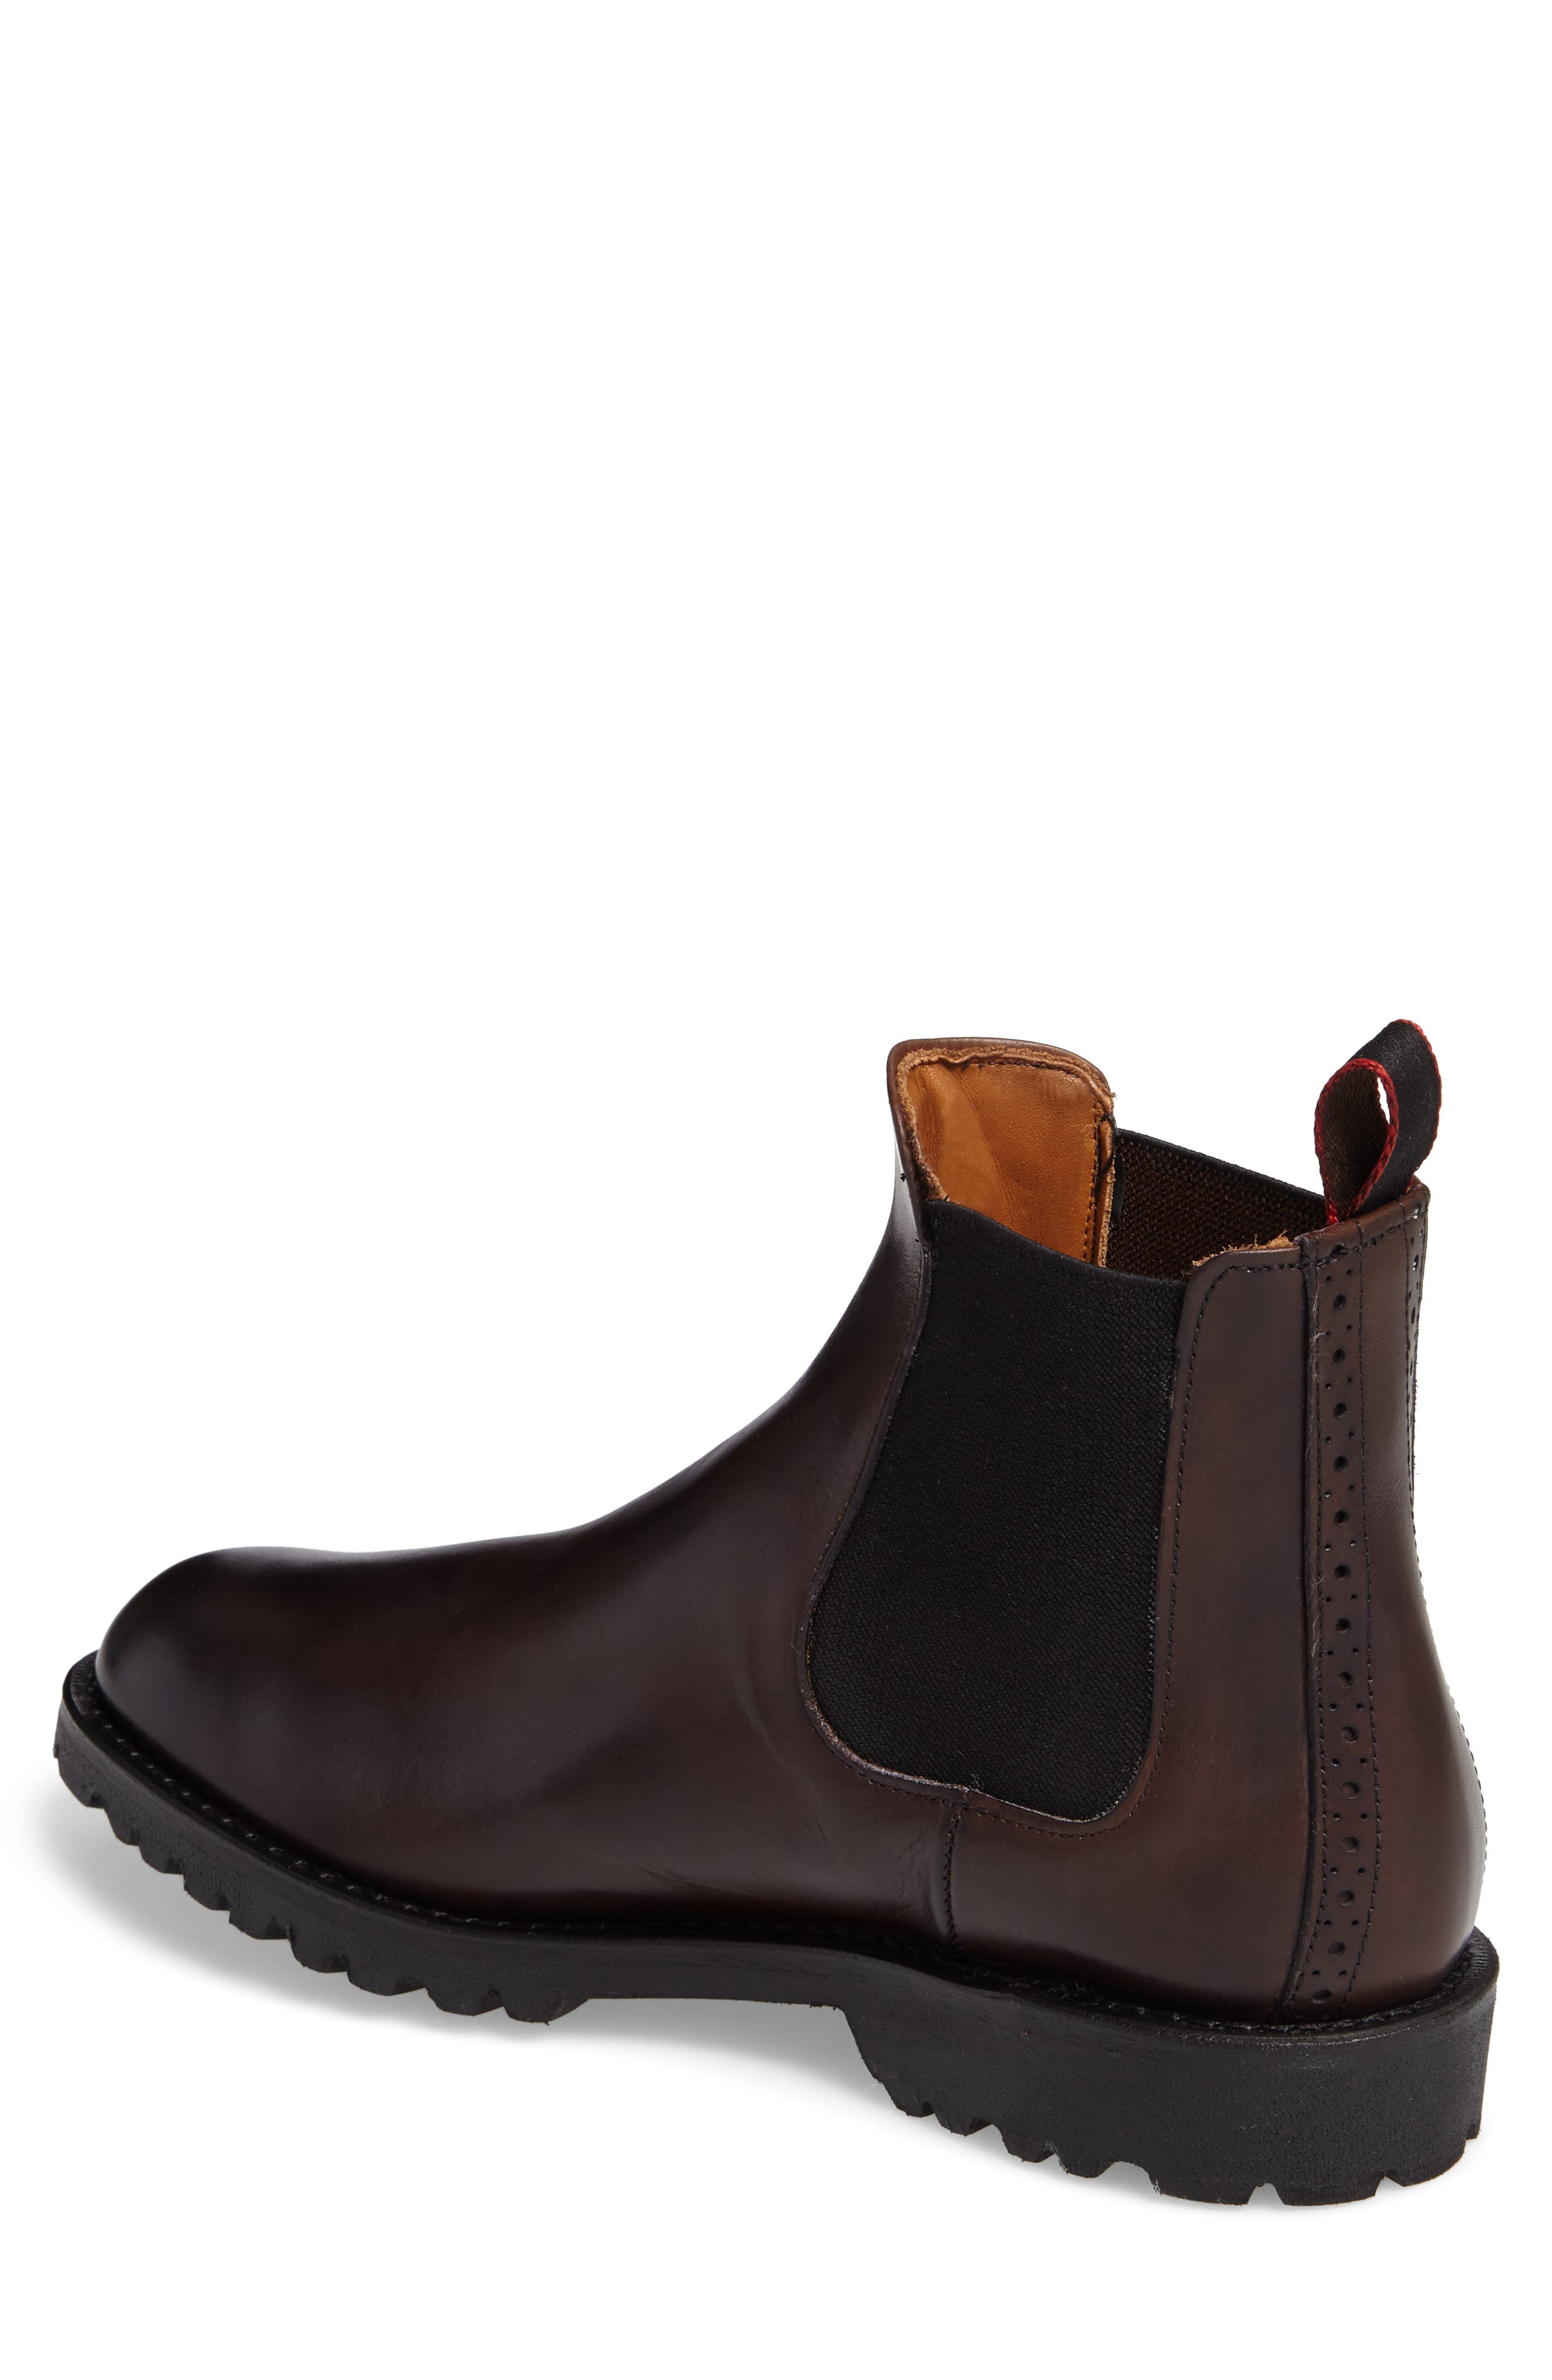 Tate Chelsea Boot,                             Alternate thumbnail 2, color,                             Brown Leather